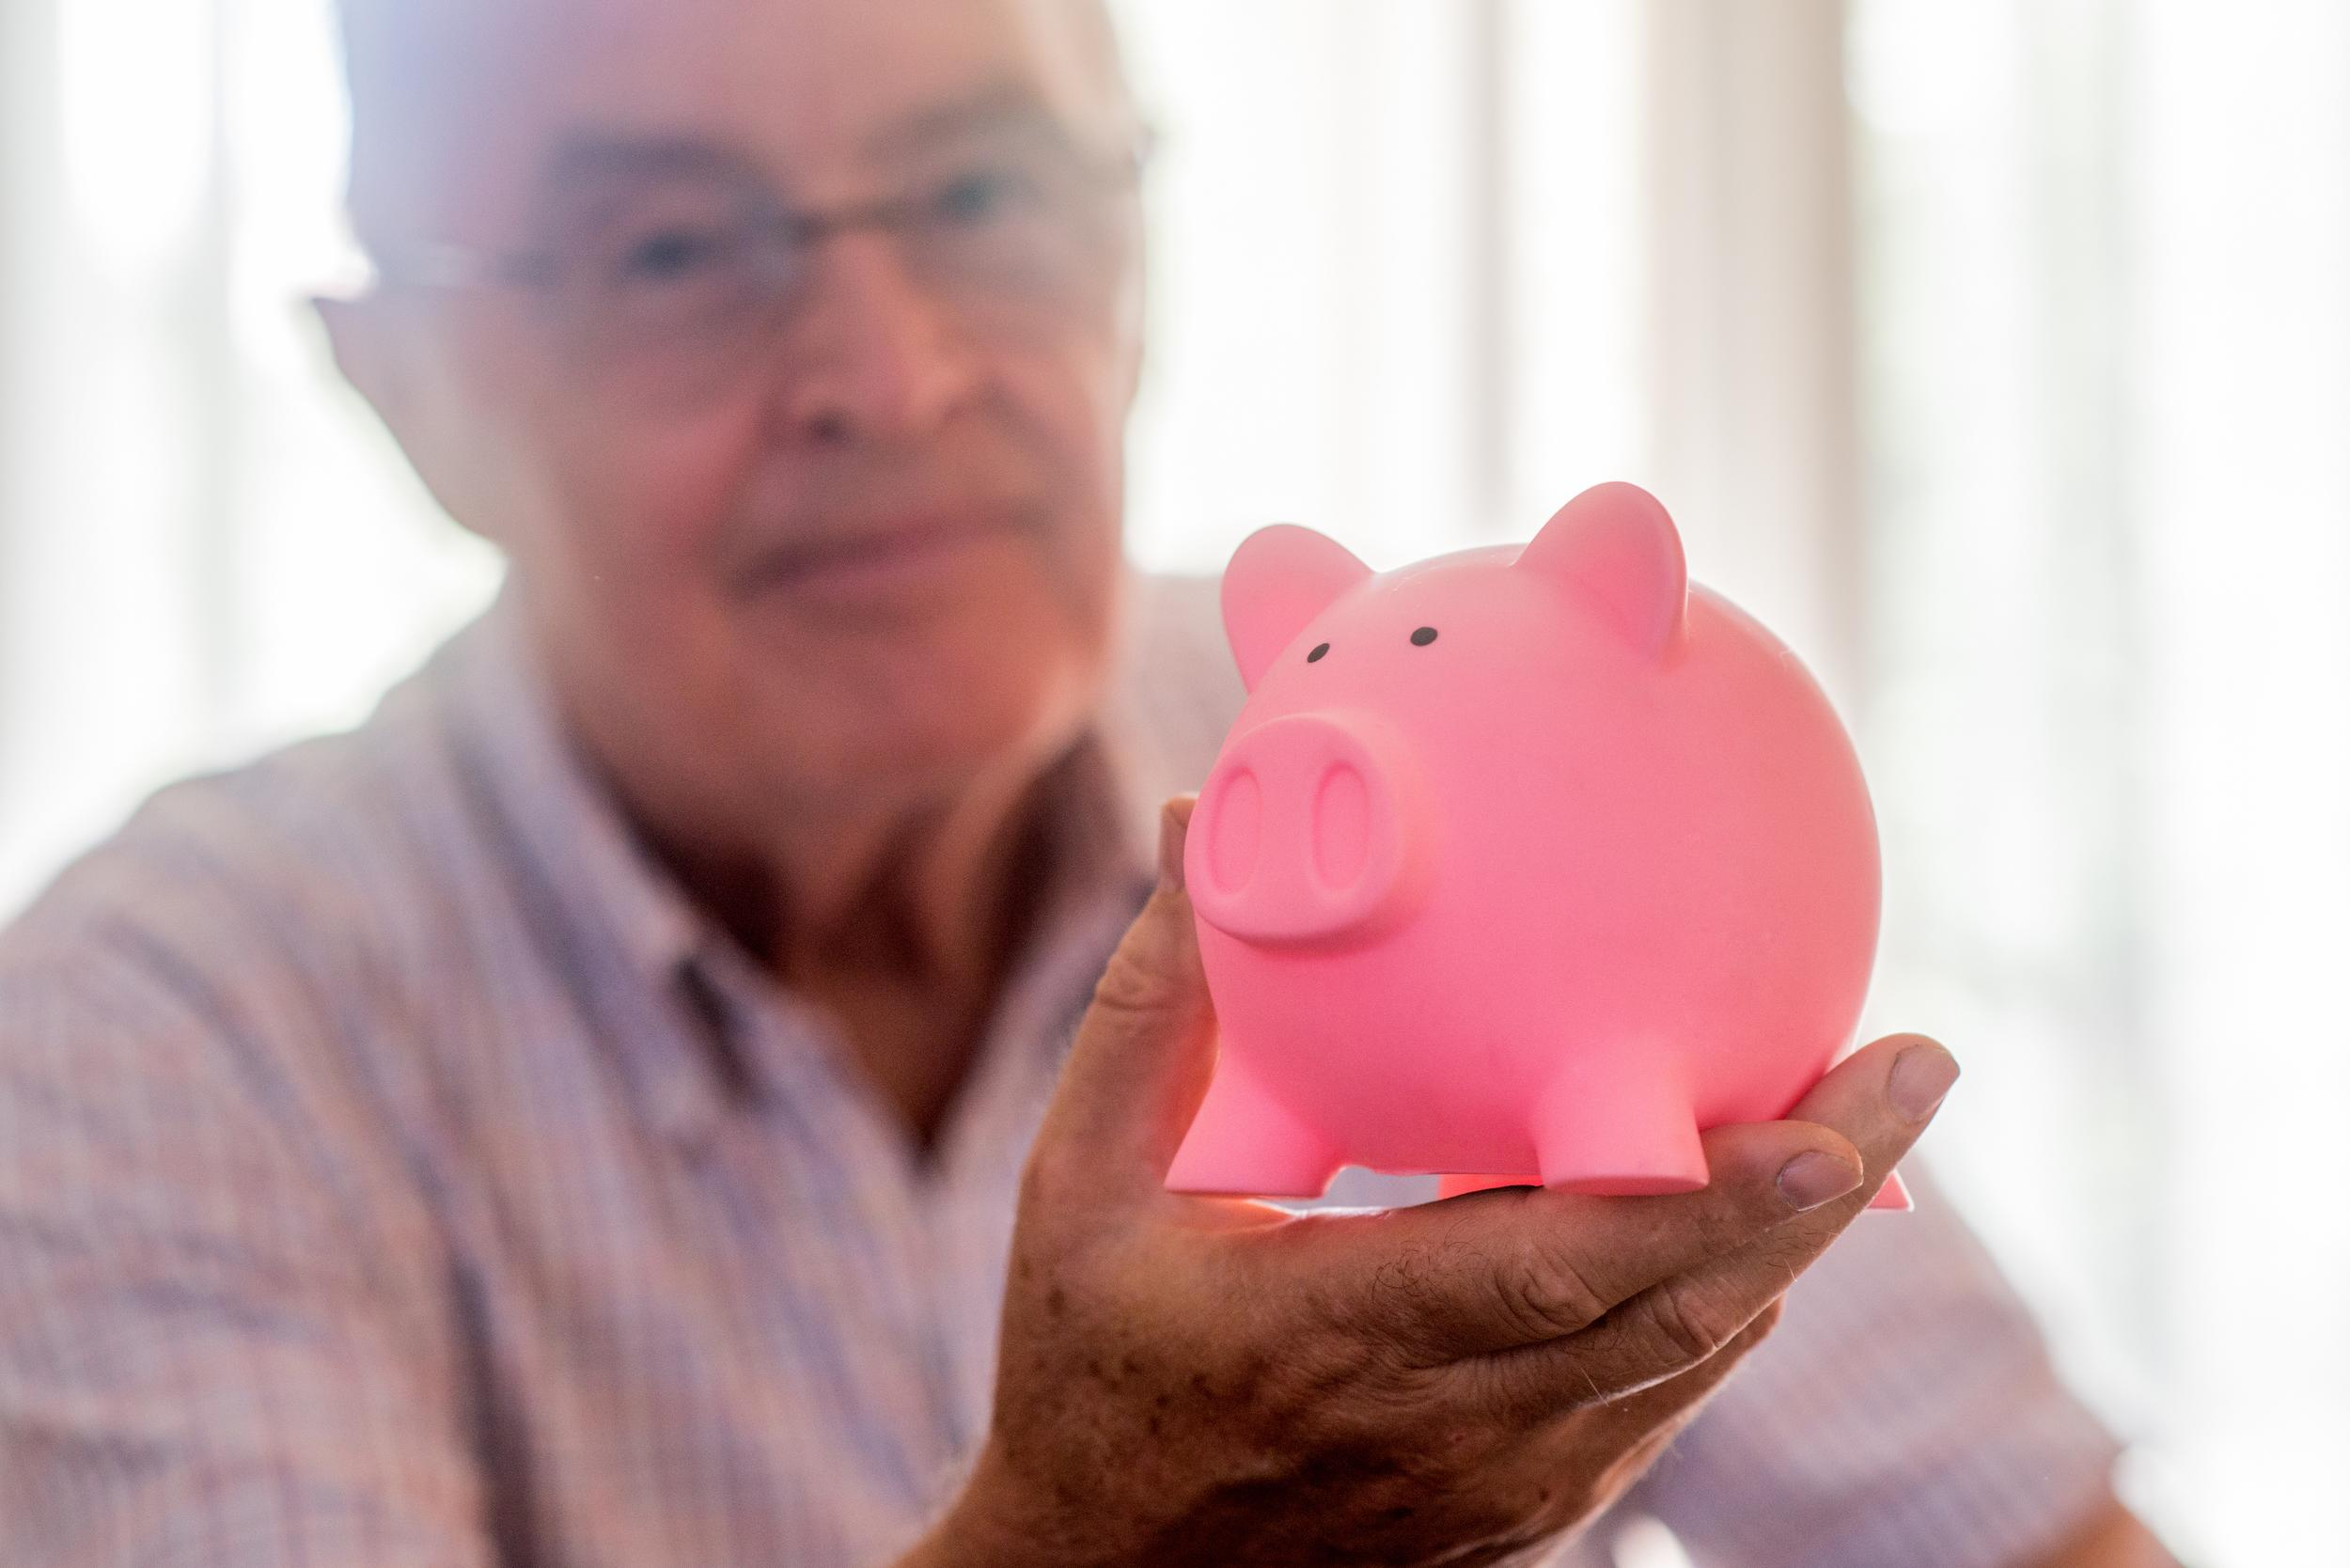 <p>While retirees are quite rightly spending what they need to enjoy retirement, they are hardly all throwing caution to the wind, buying flash cars and spending the kids' inheritance.</p>  <p>Most expect to have something left over to pass onto their family after their death. Some 69% expect to leave property in their wills, and 75% expect to leave cash - according to Unbiased.co.uk - because while baby boomers know how to have fun - they also know how to save for the future.</p>